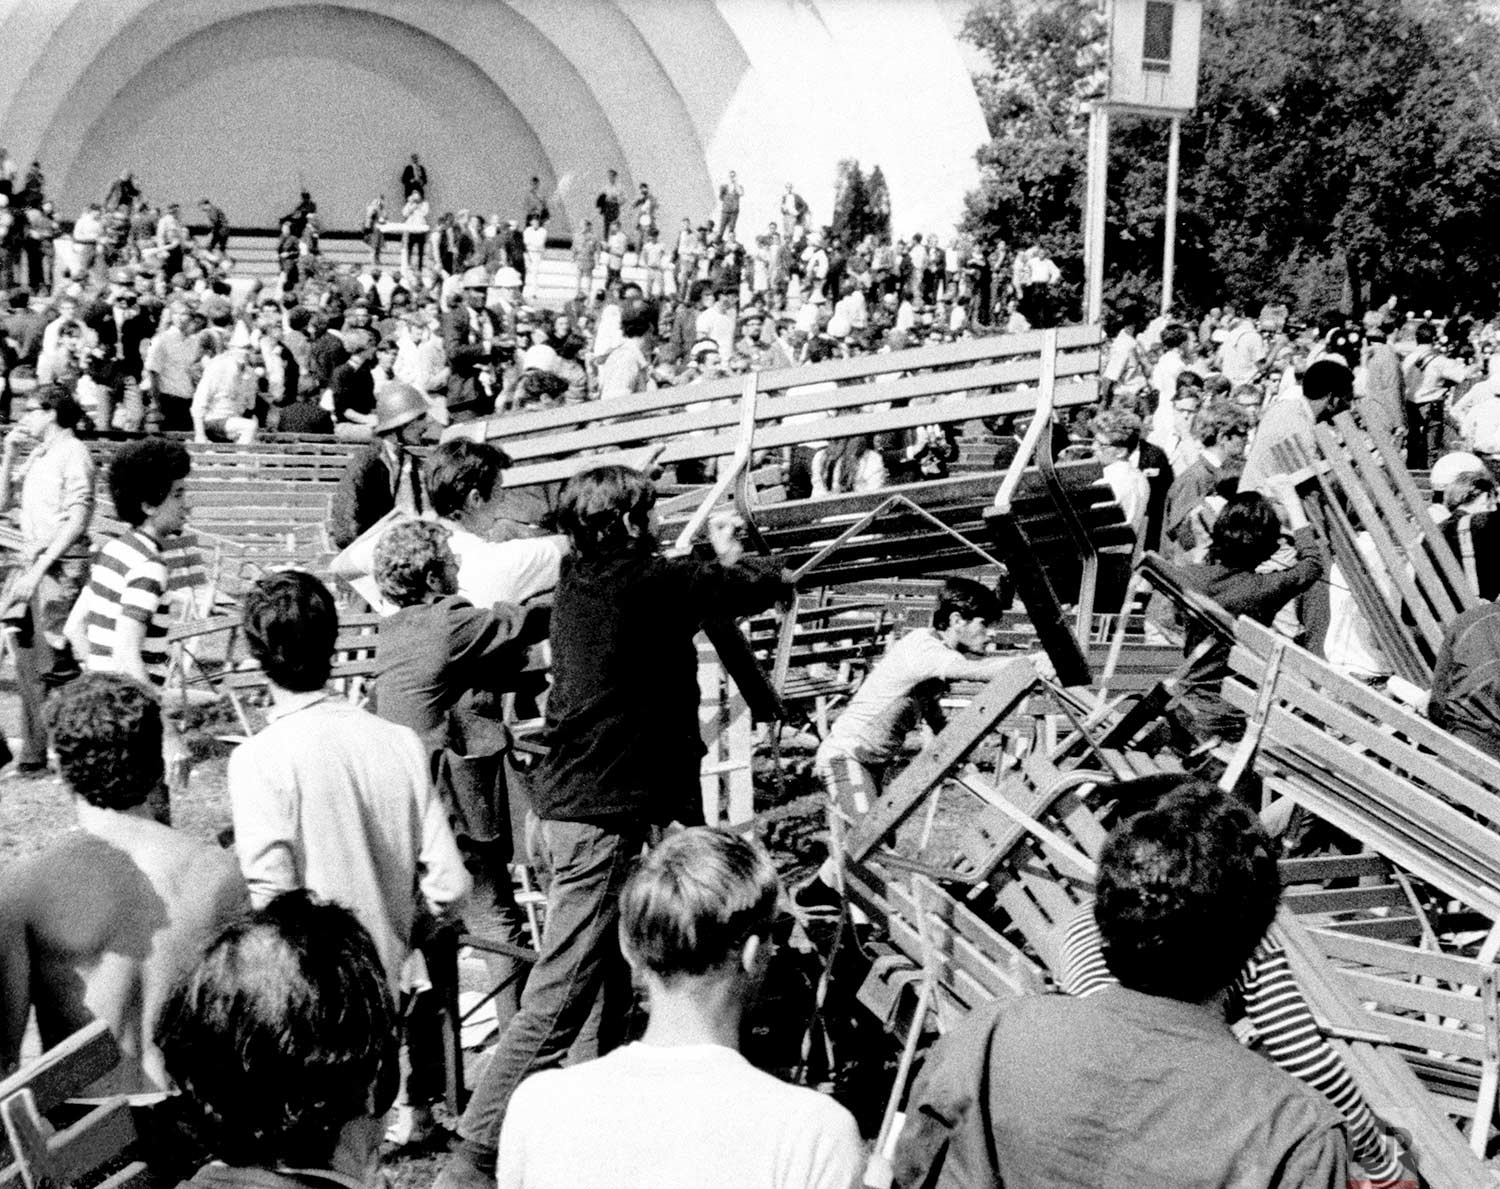 Long haired and bearded hippies and yippies use park benches at Grant Park's Band Shell to construct a barricade against Chicago police and National Guardsmen in Chicago on August 28, 1968. (AP Photo)